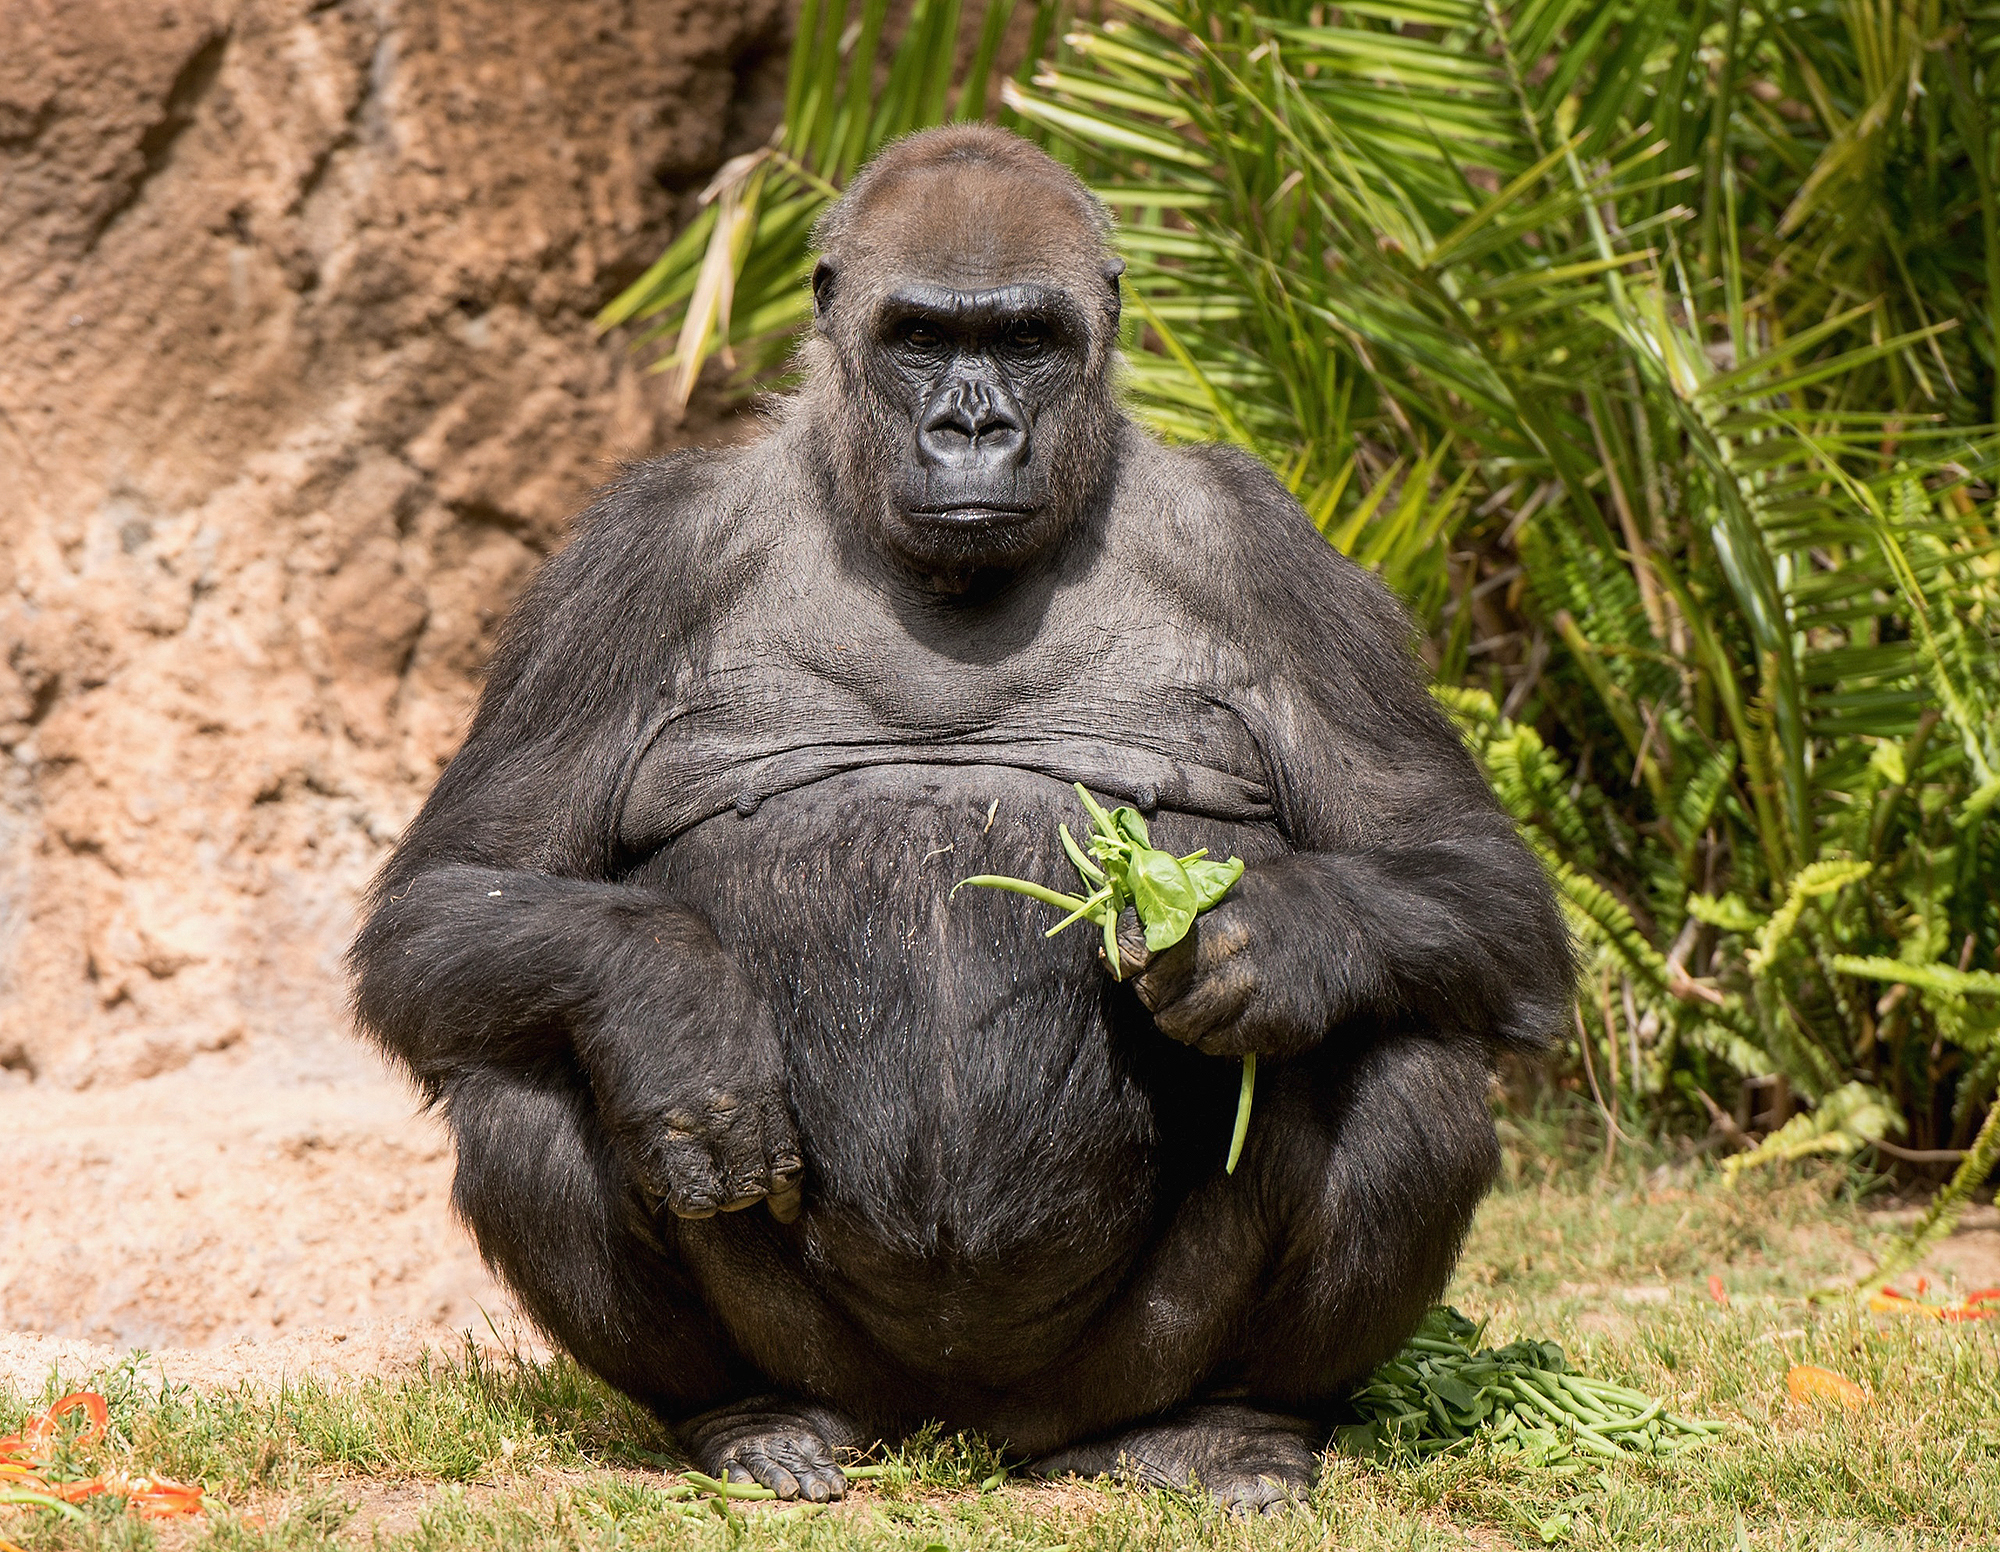 L.A. Zoo Gorillas Treated To Vegetarian Feast By Top L.A. Chefs